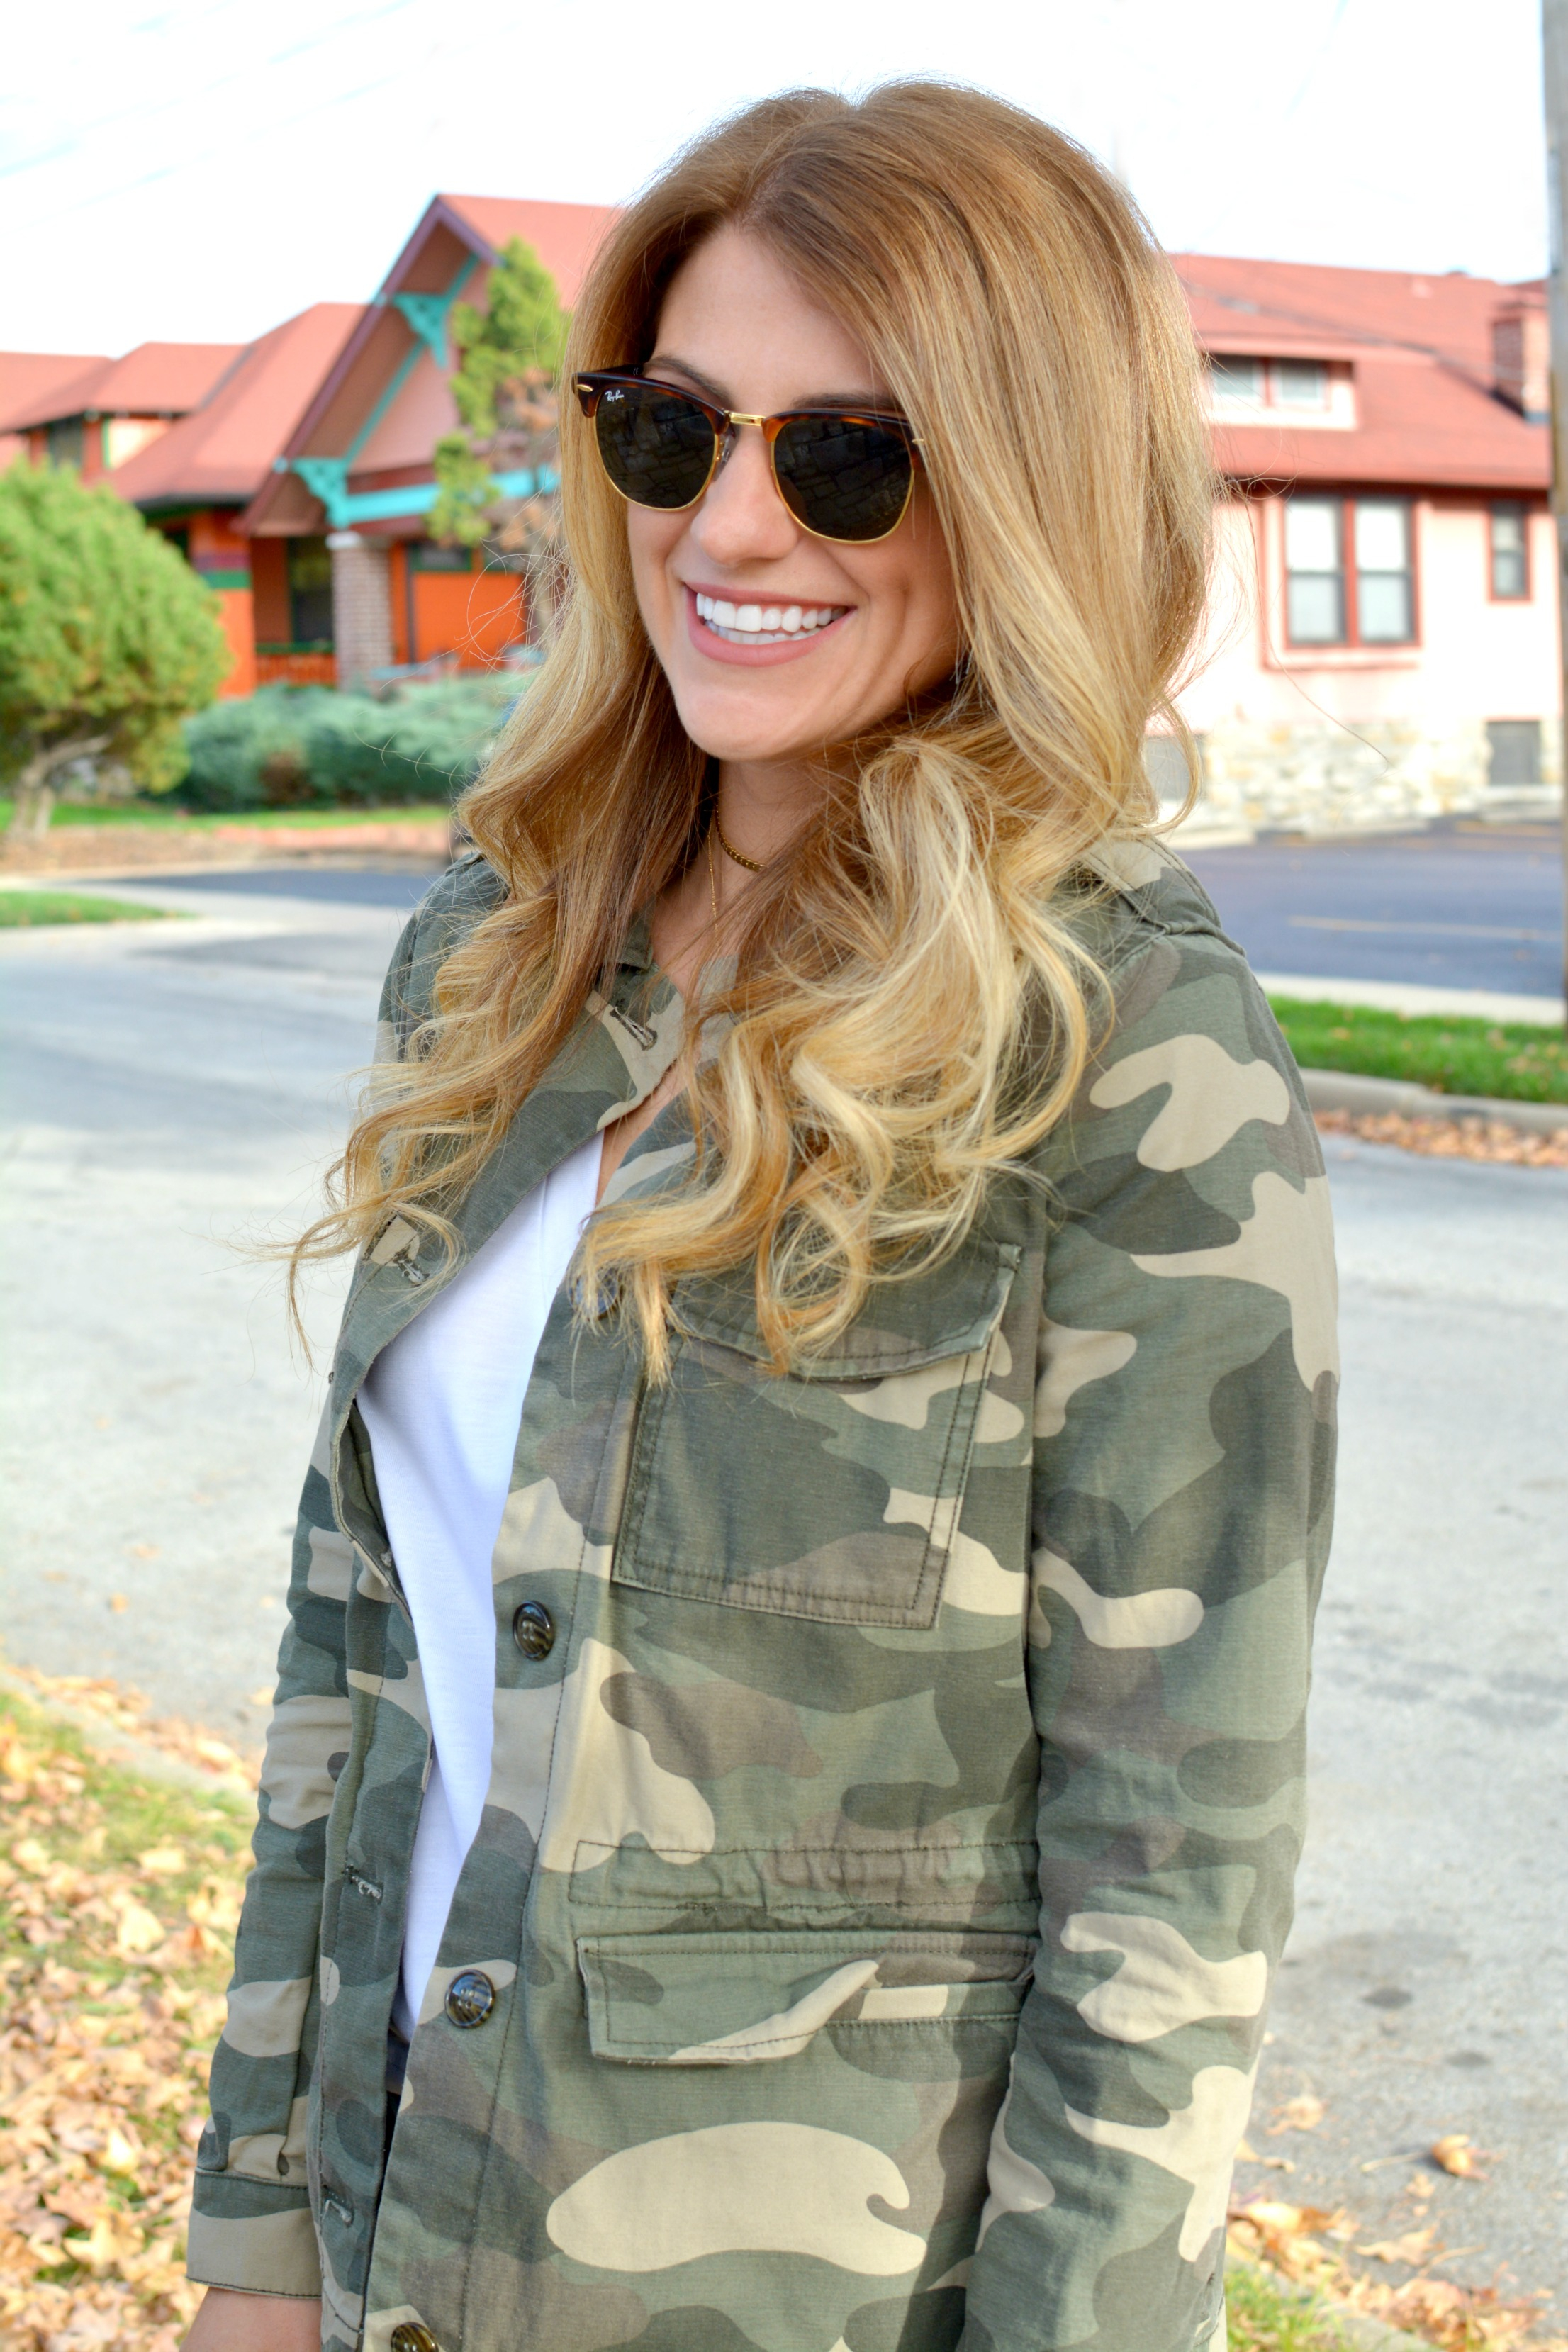 Ashley from LSR in a camo jacket